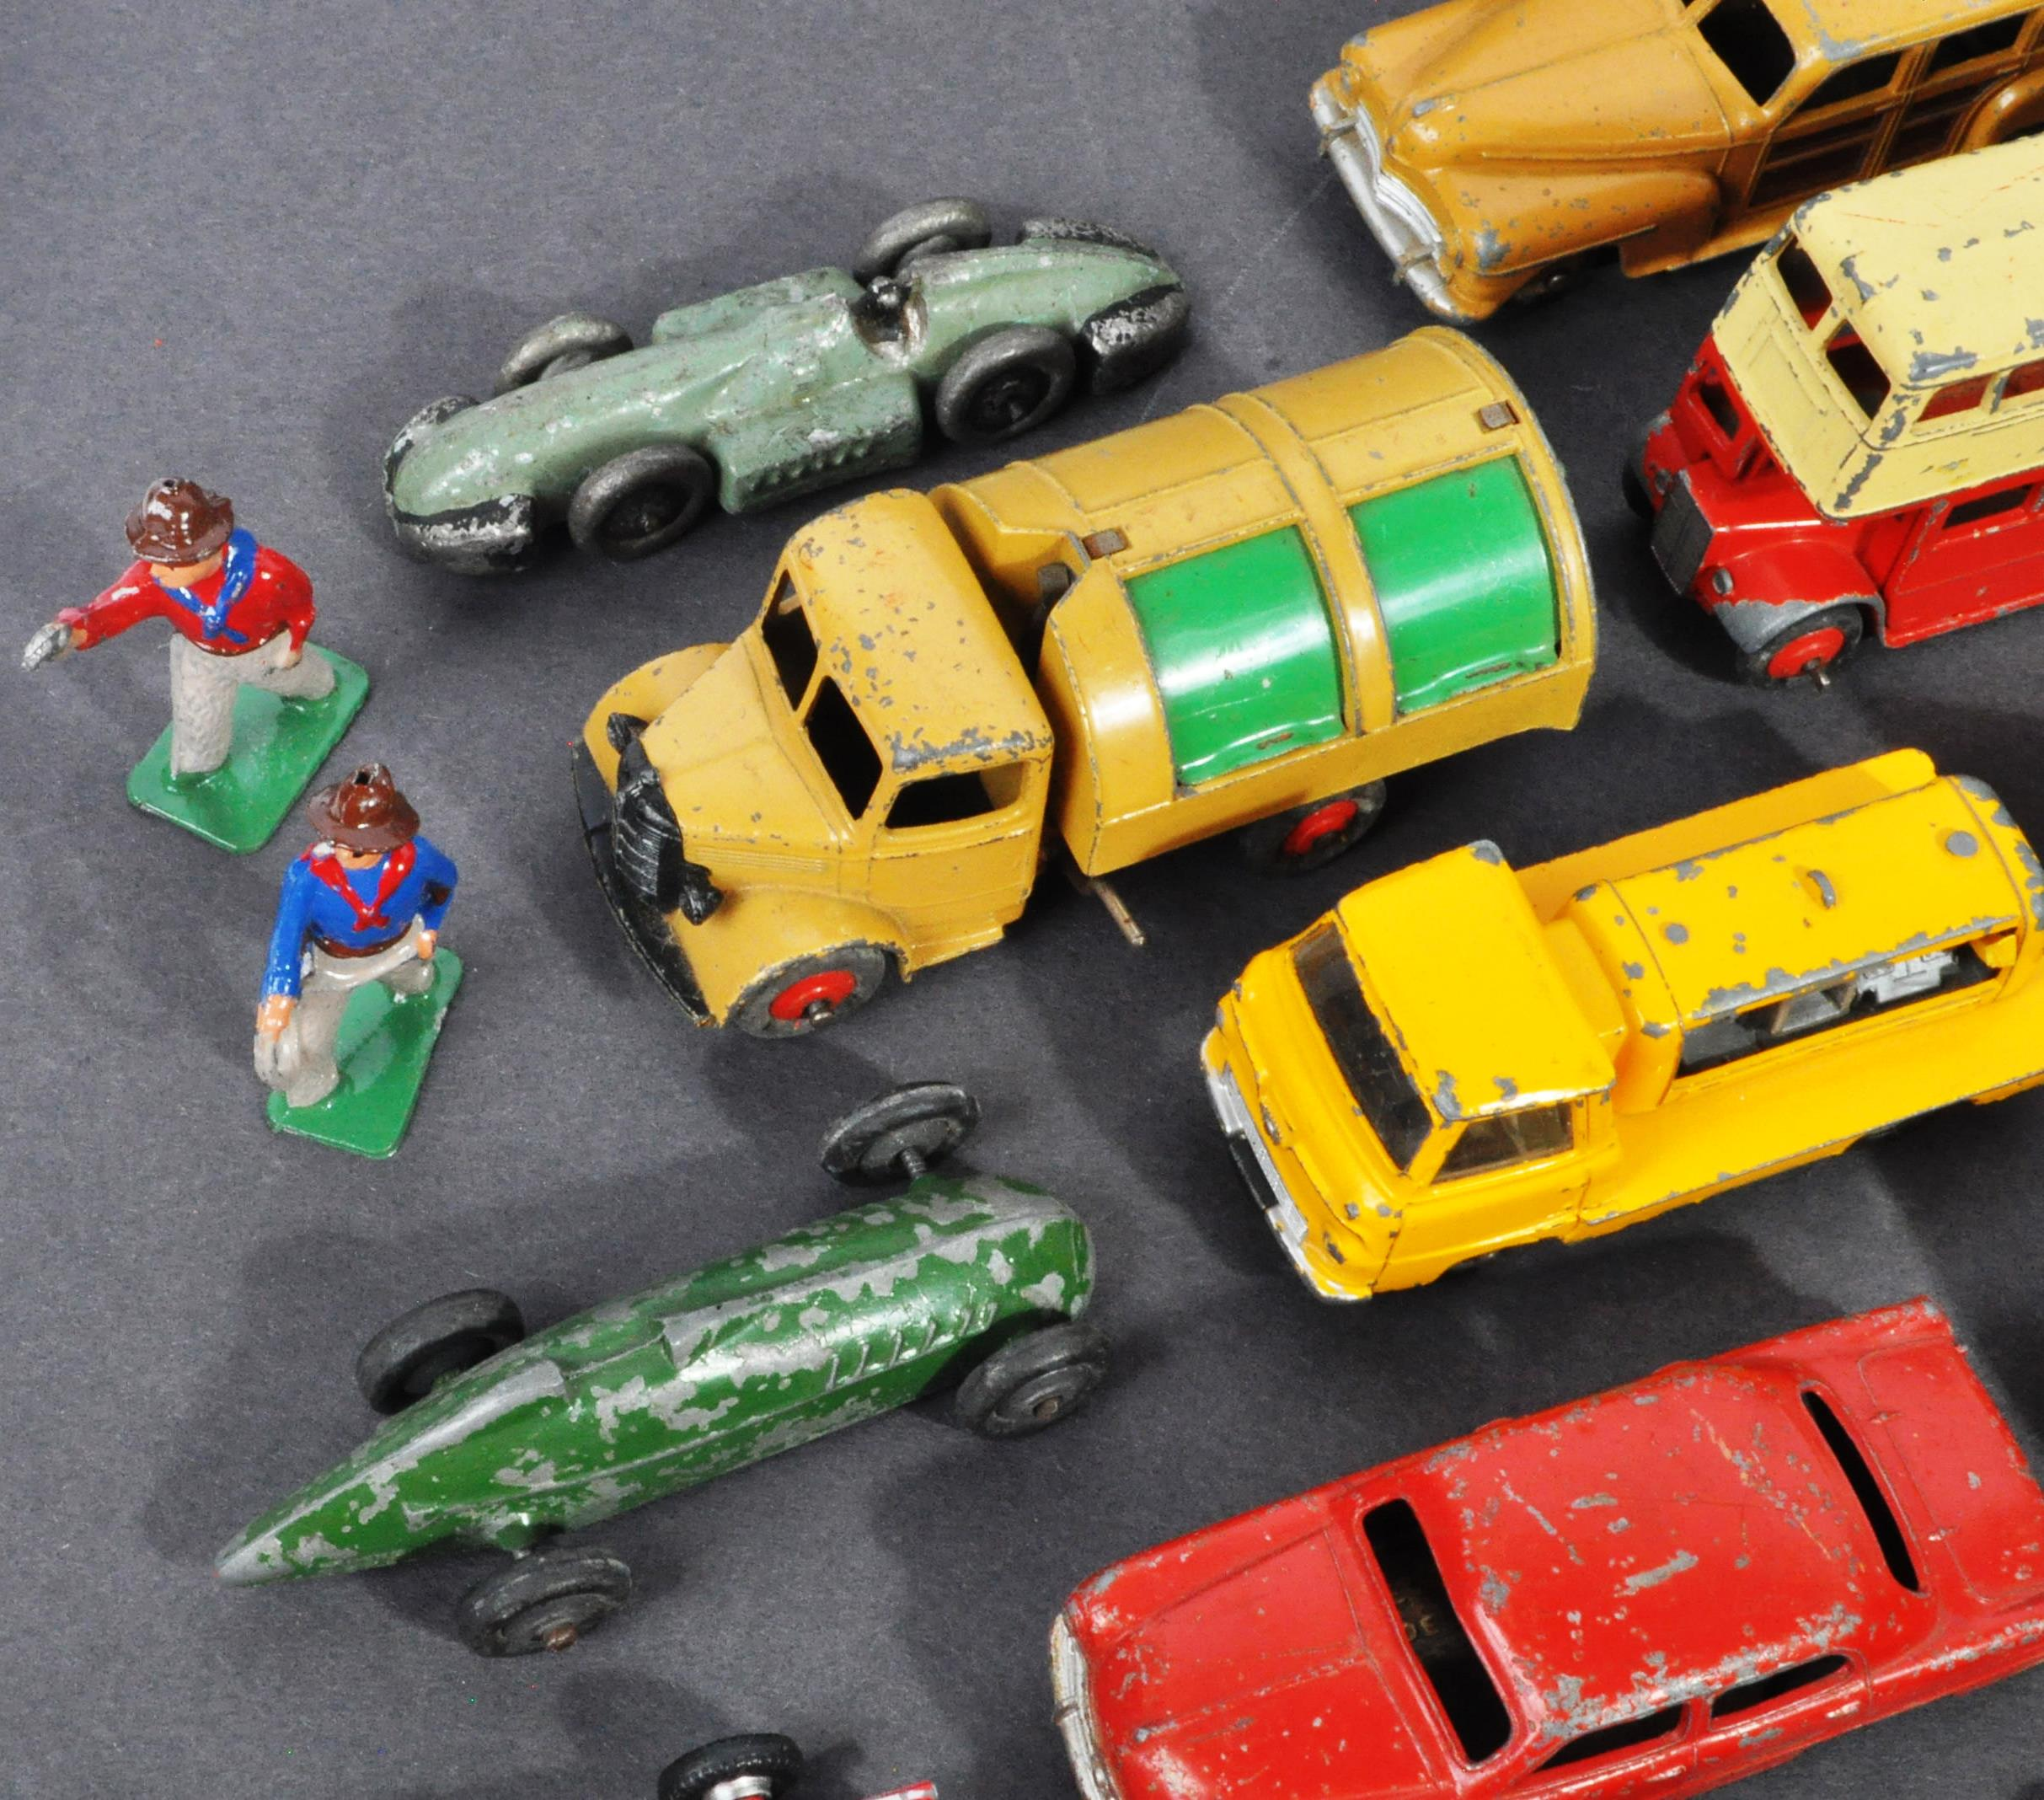 LARGE COLLECTION OF DINKY & OTHER DIECAST MODELS - Image 2 of 6